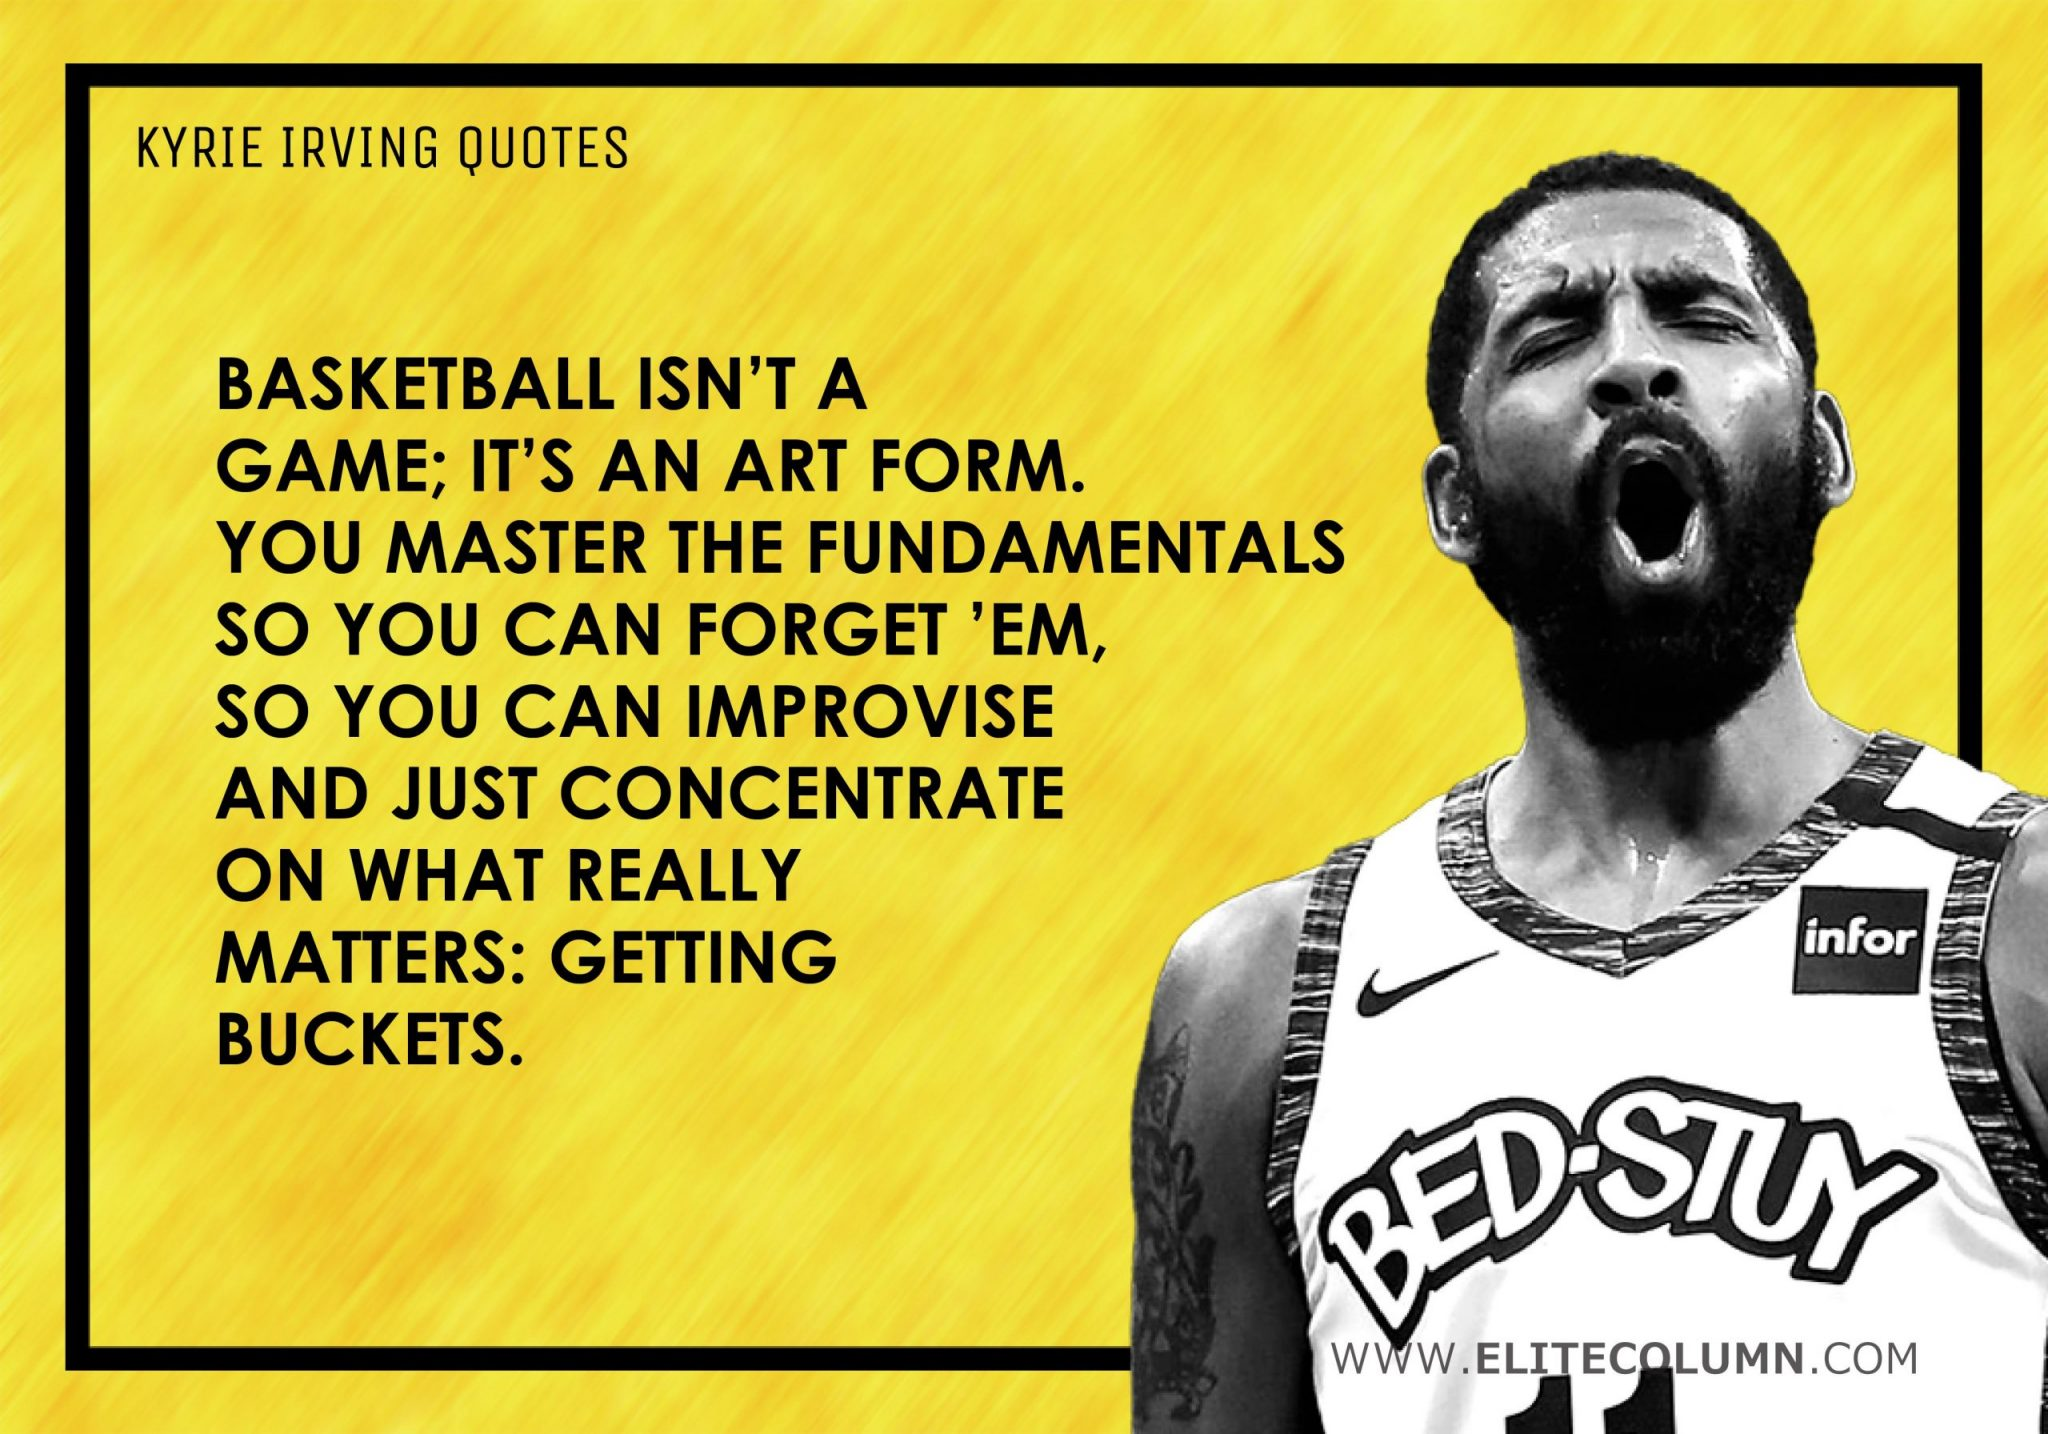 Kyrie Irving Quotes (1)